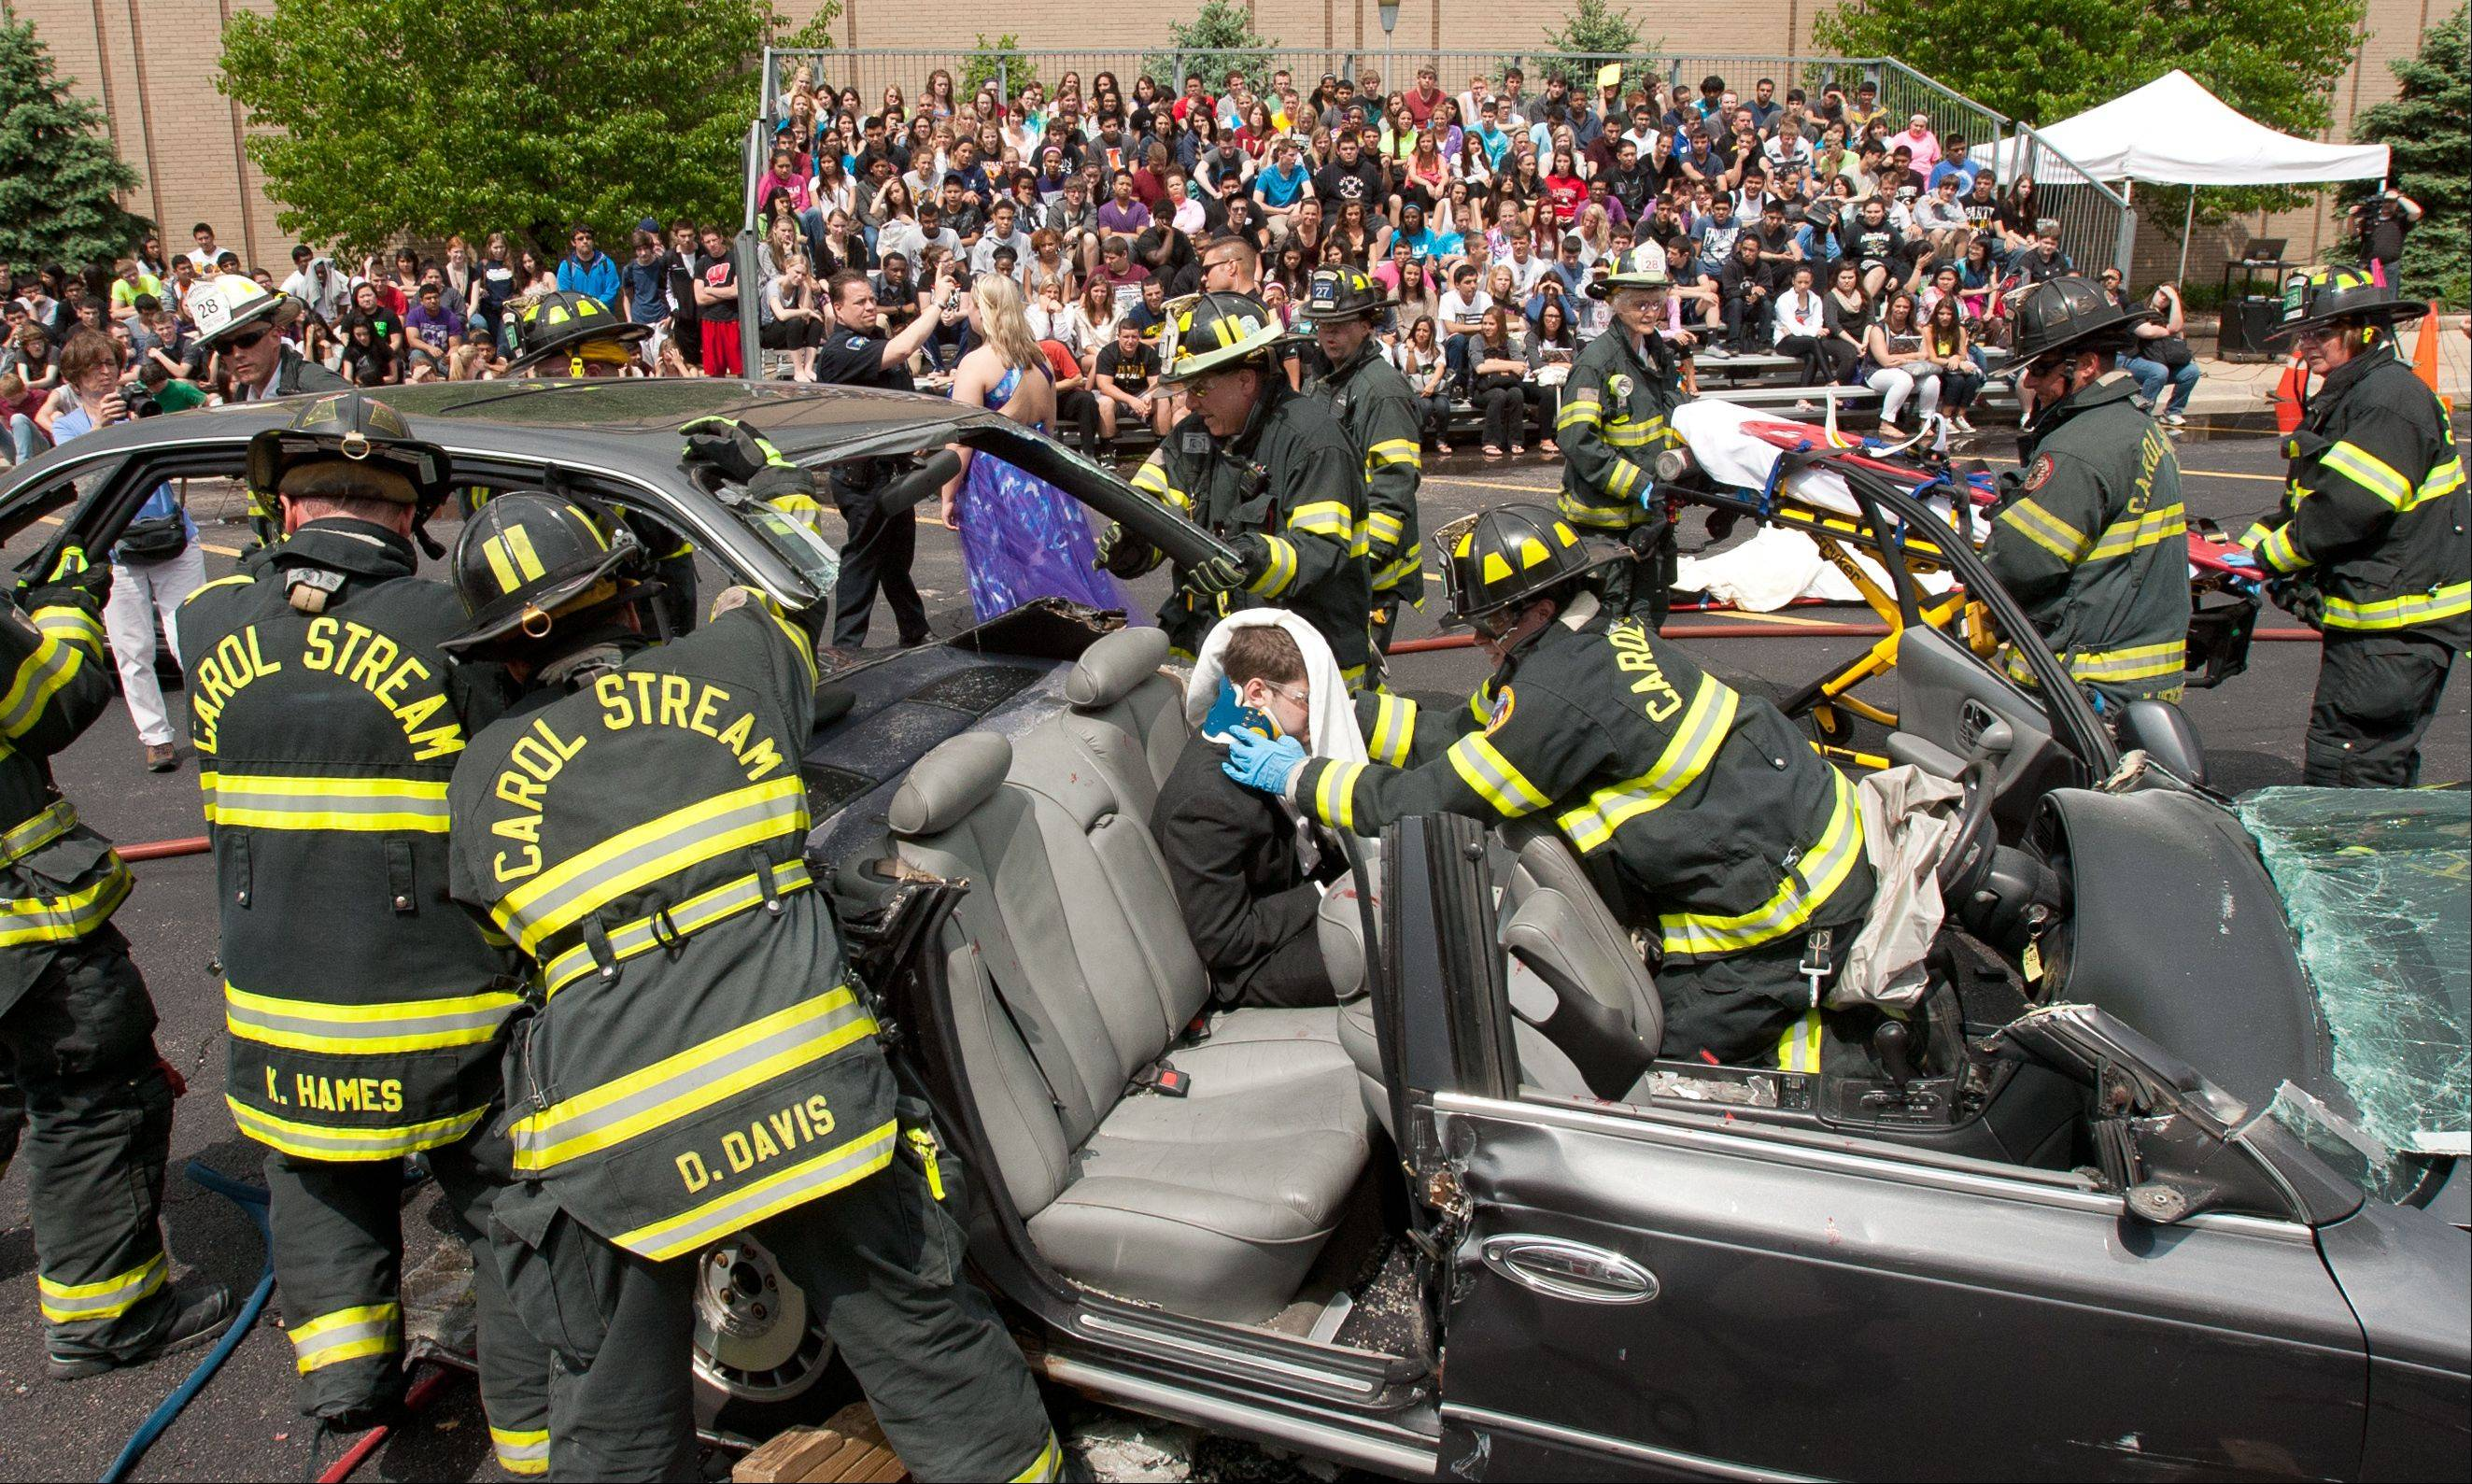 Carol Stream firefighters remove the roof of a car Wednesday during a mock DUI fatal car crash demonstration to extricate a student actor playing a victim.